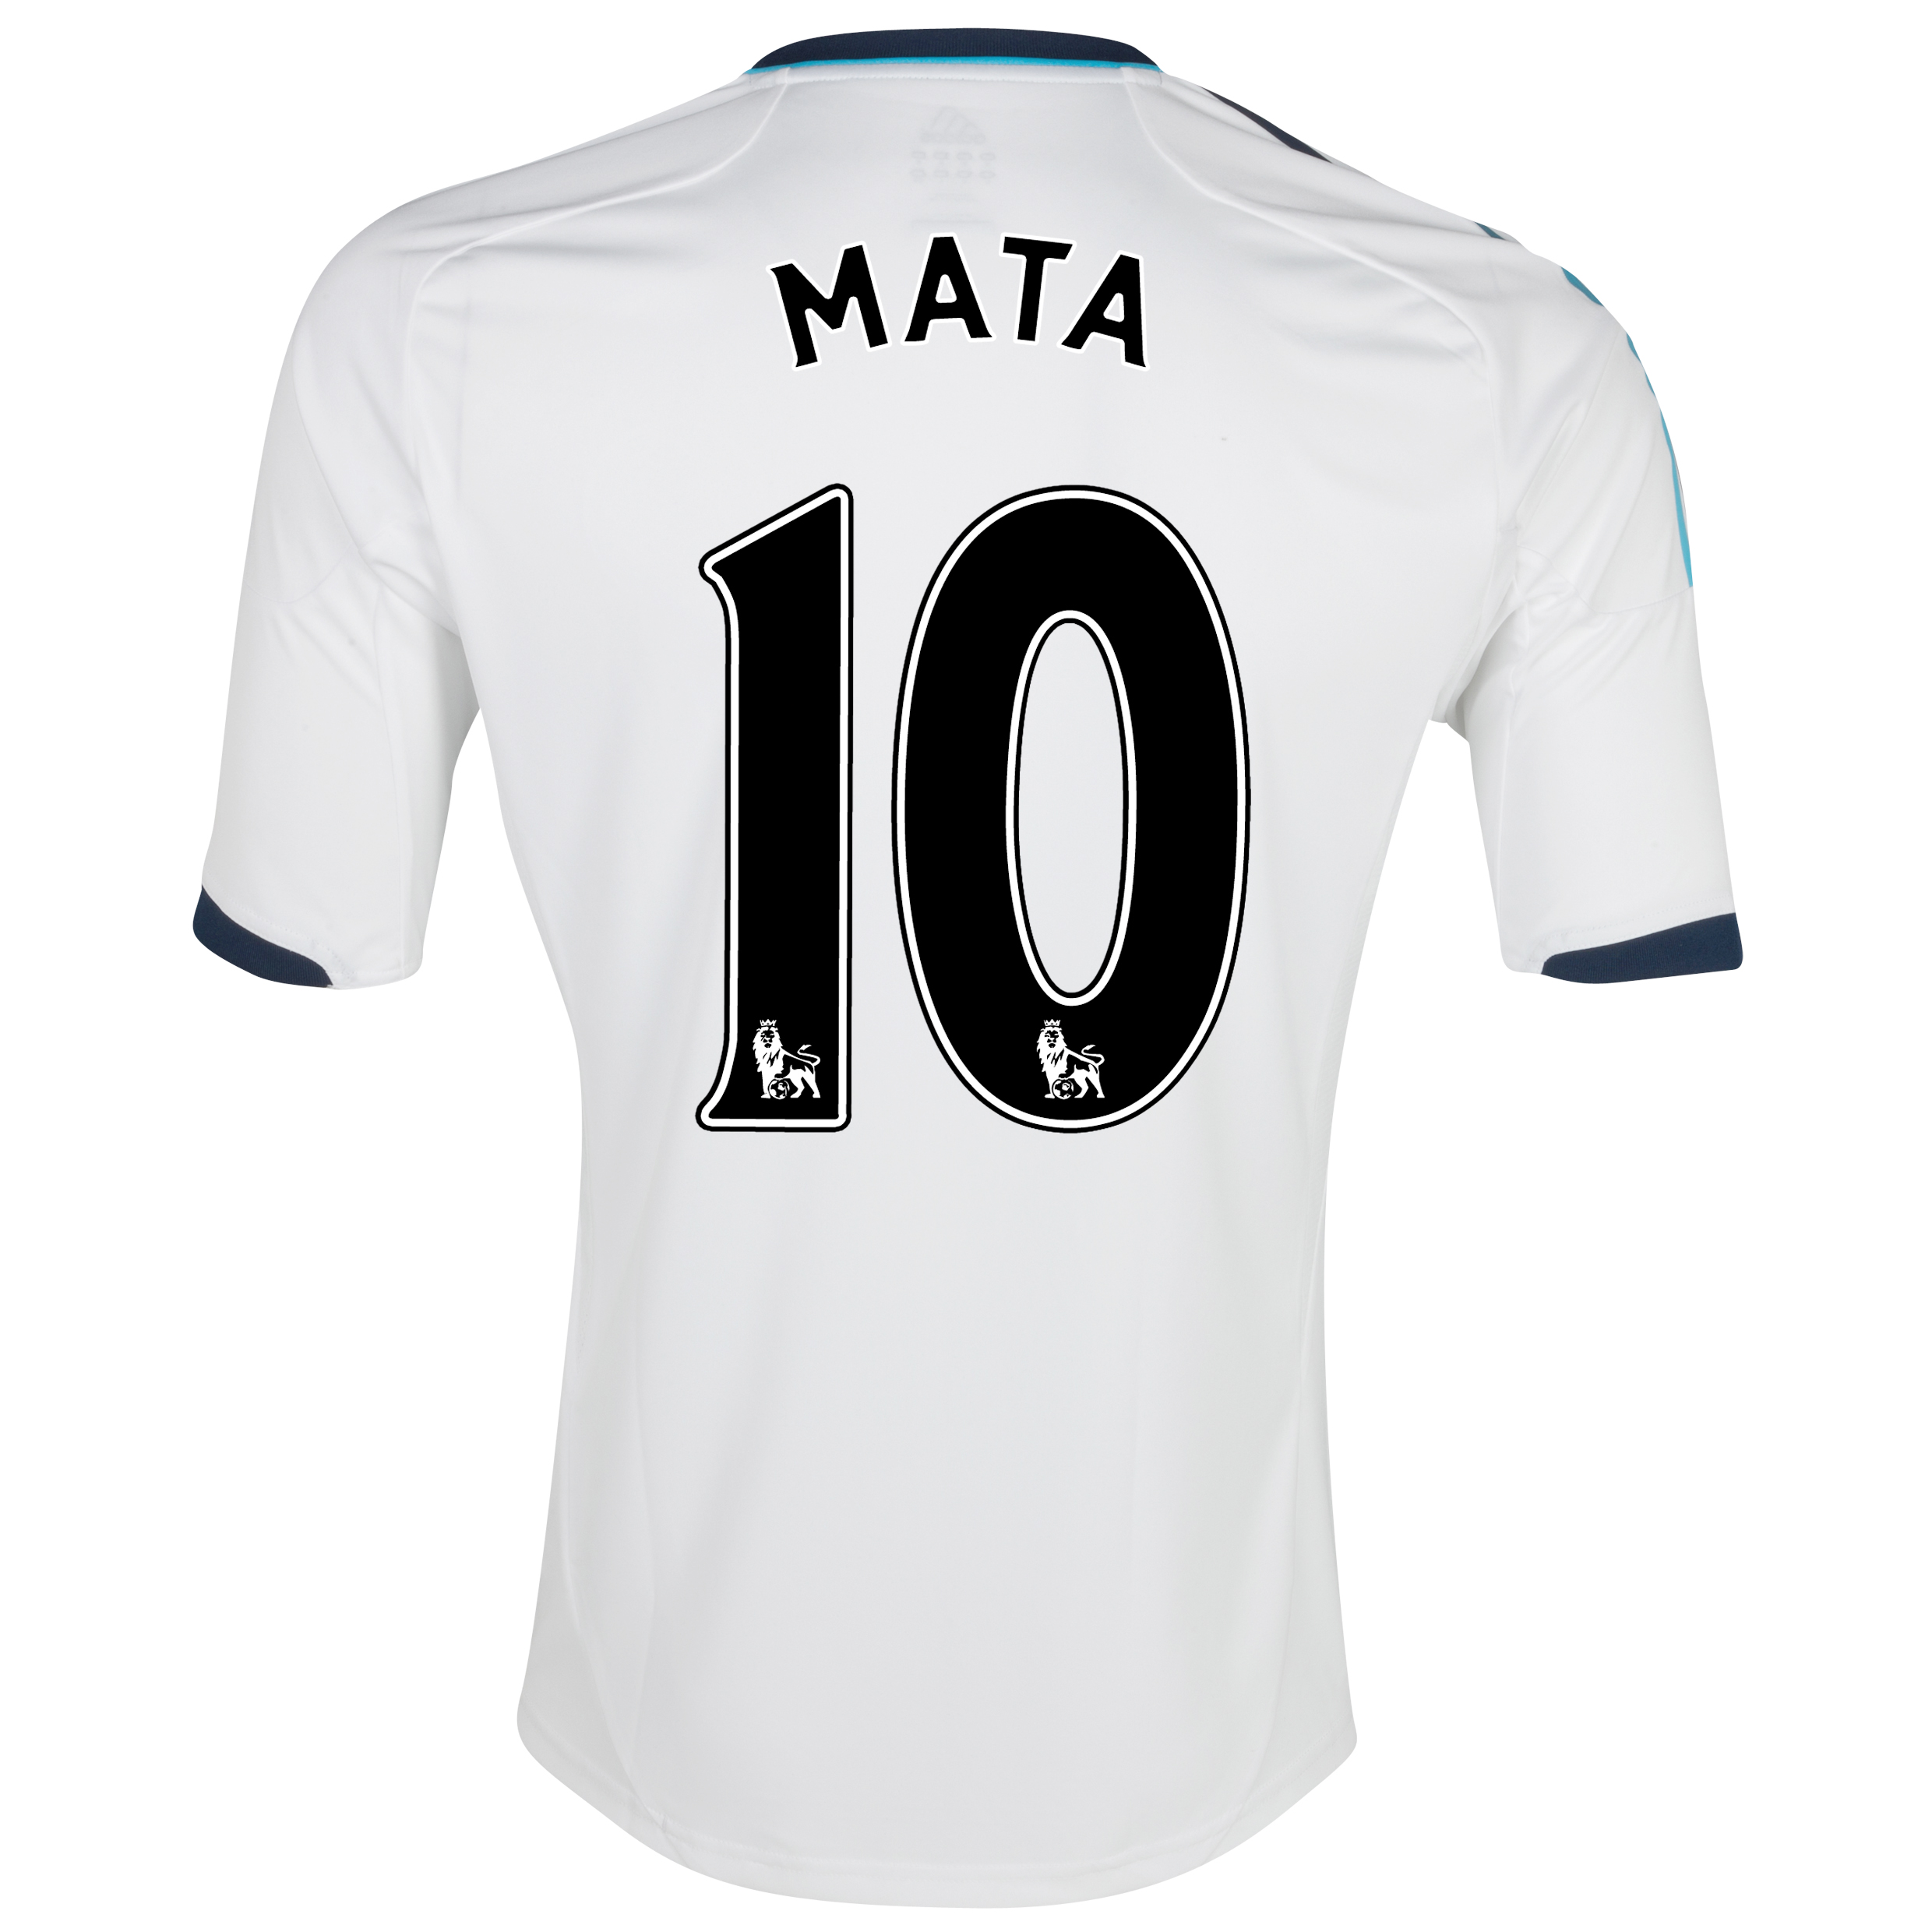 Chelsea Away Shirt 2012/13 with Mata 10 printing